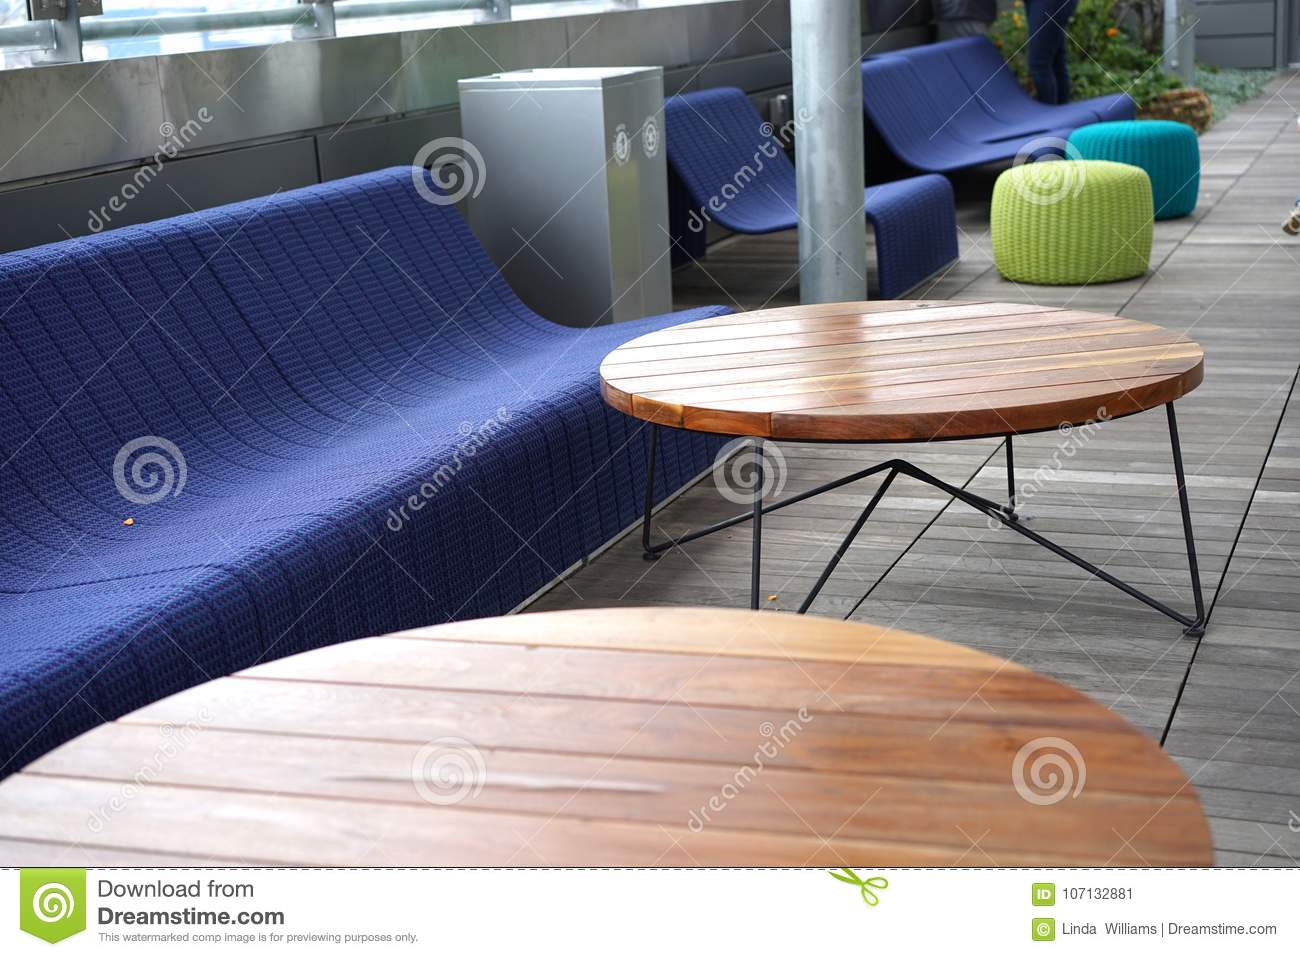 https www dreamstime com public library rooftop deck austin texas offers comfortable seating geometric tables great reading image107132881